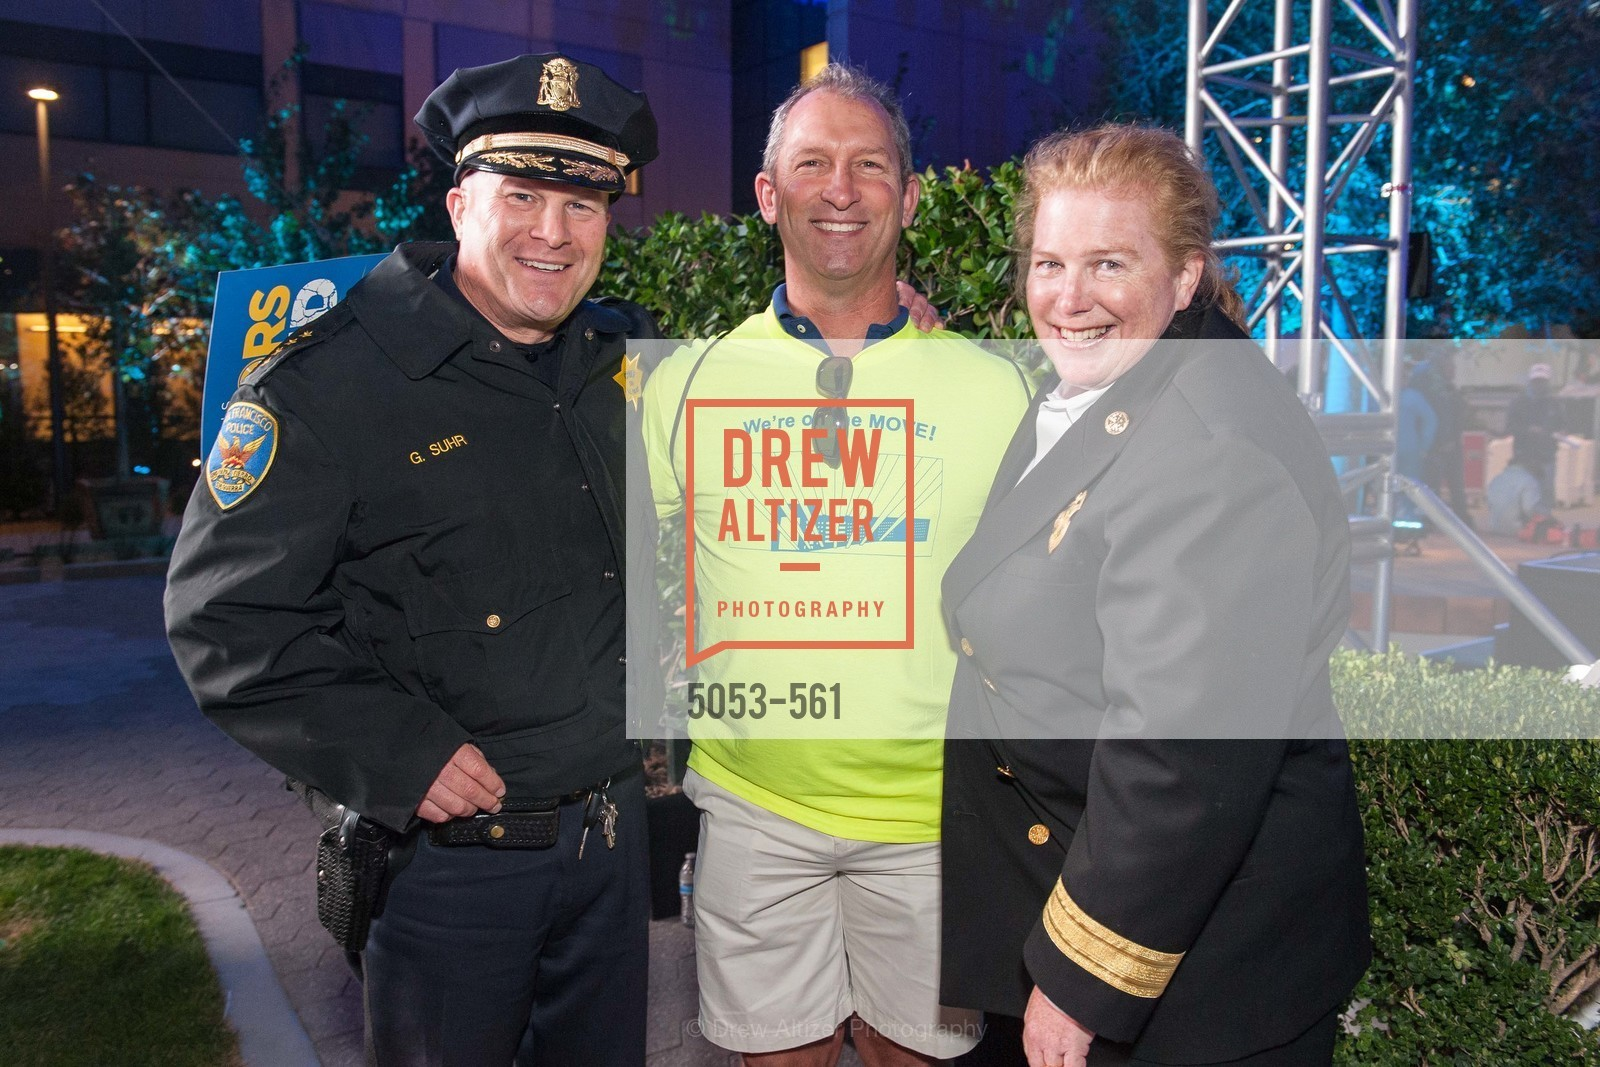 Greg Suhr, Stan Salvemini, Joanne Hayes-White, UCSF Medical Center HARD HAT WALK & LIGHTS ON FESTIVAL, US, September 6th, 2014,Drew Altizer, Drew Altizer Photography, full-service event agency, private events, San Francisco photographer, photographer California